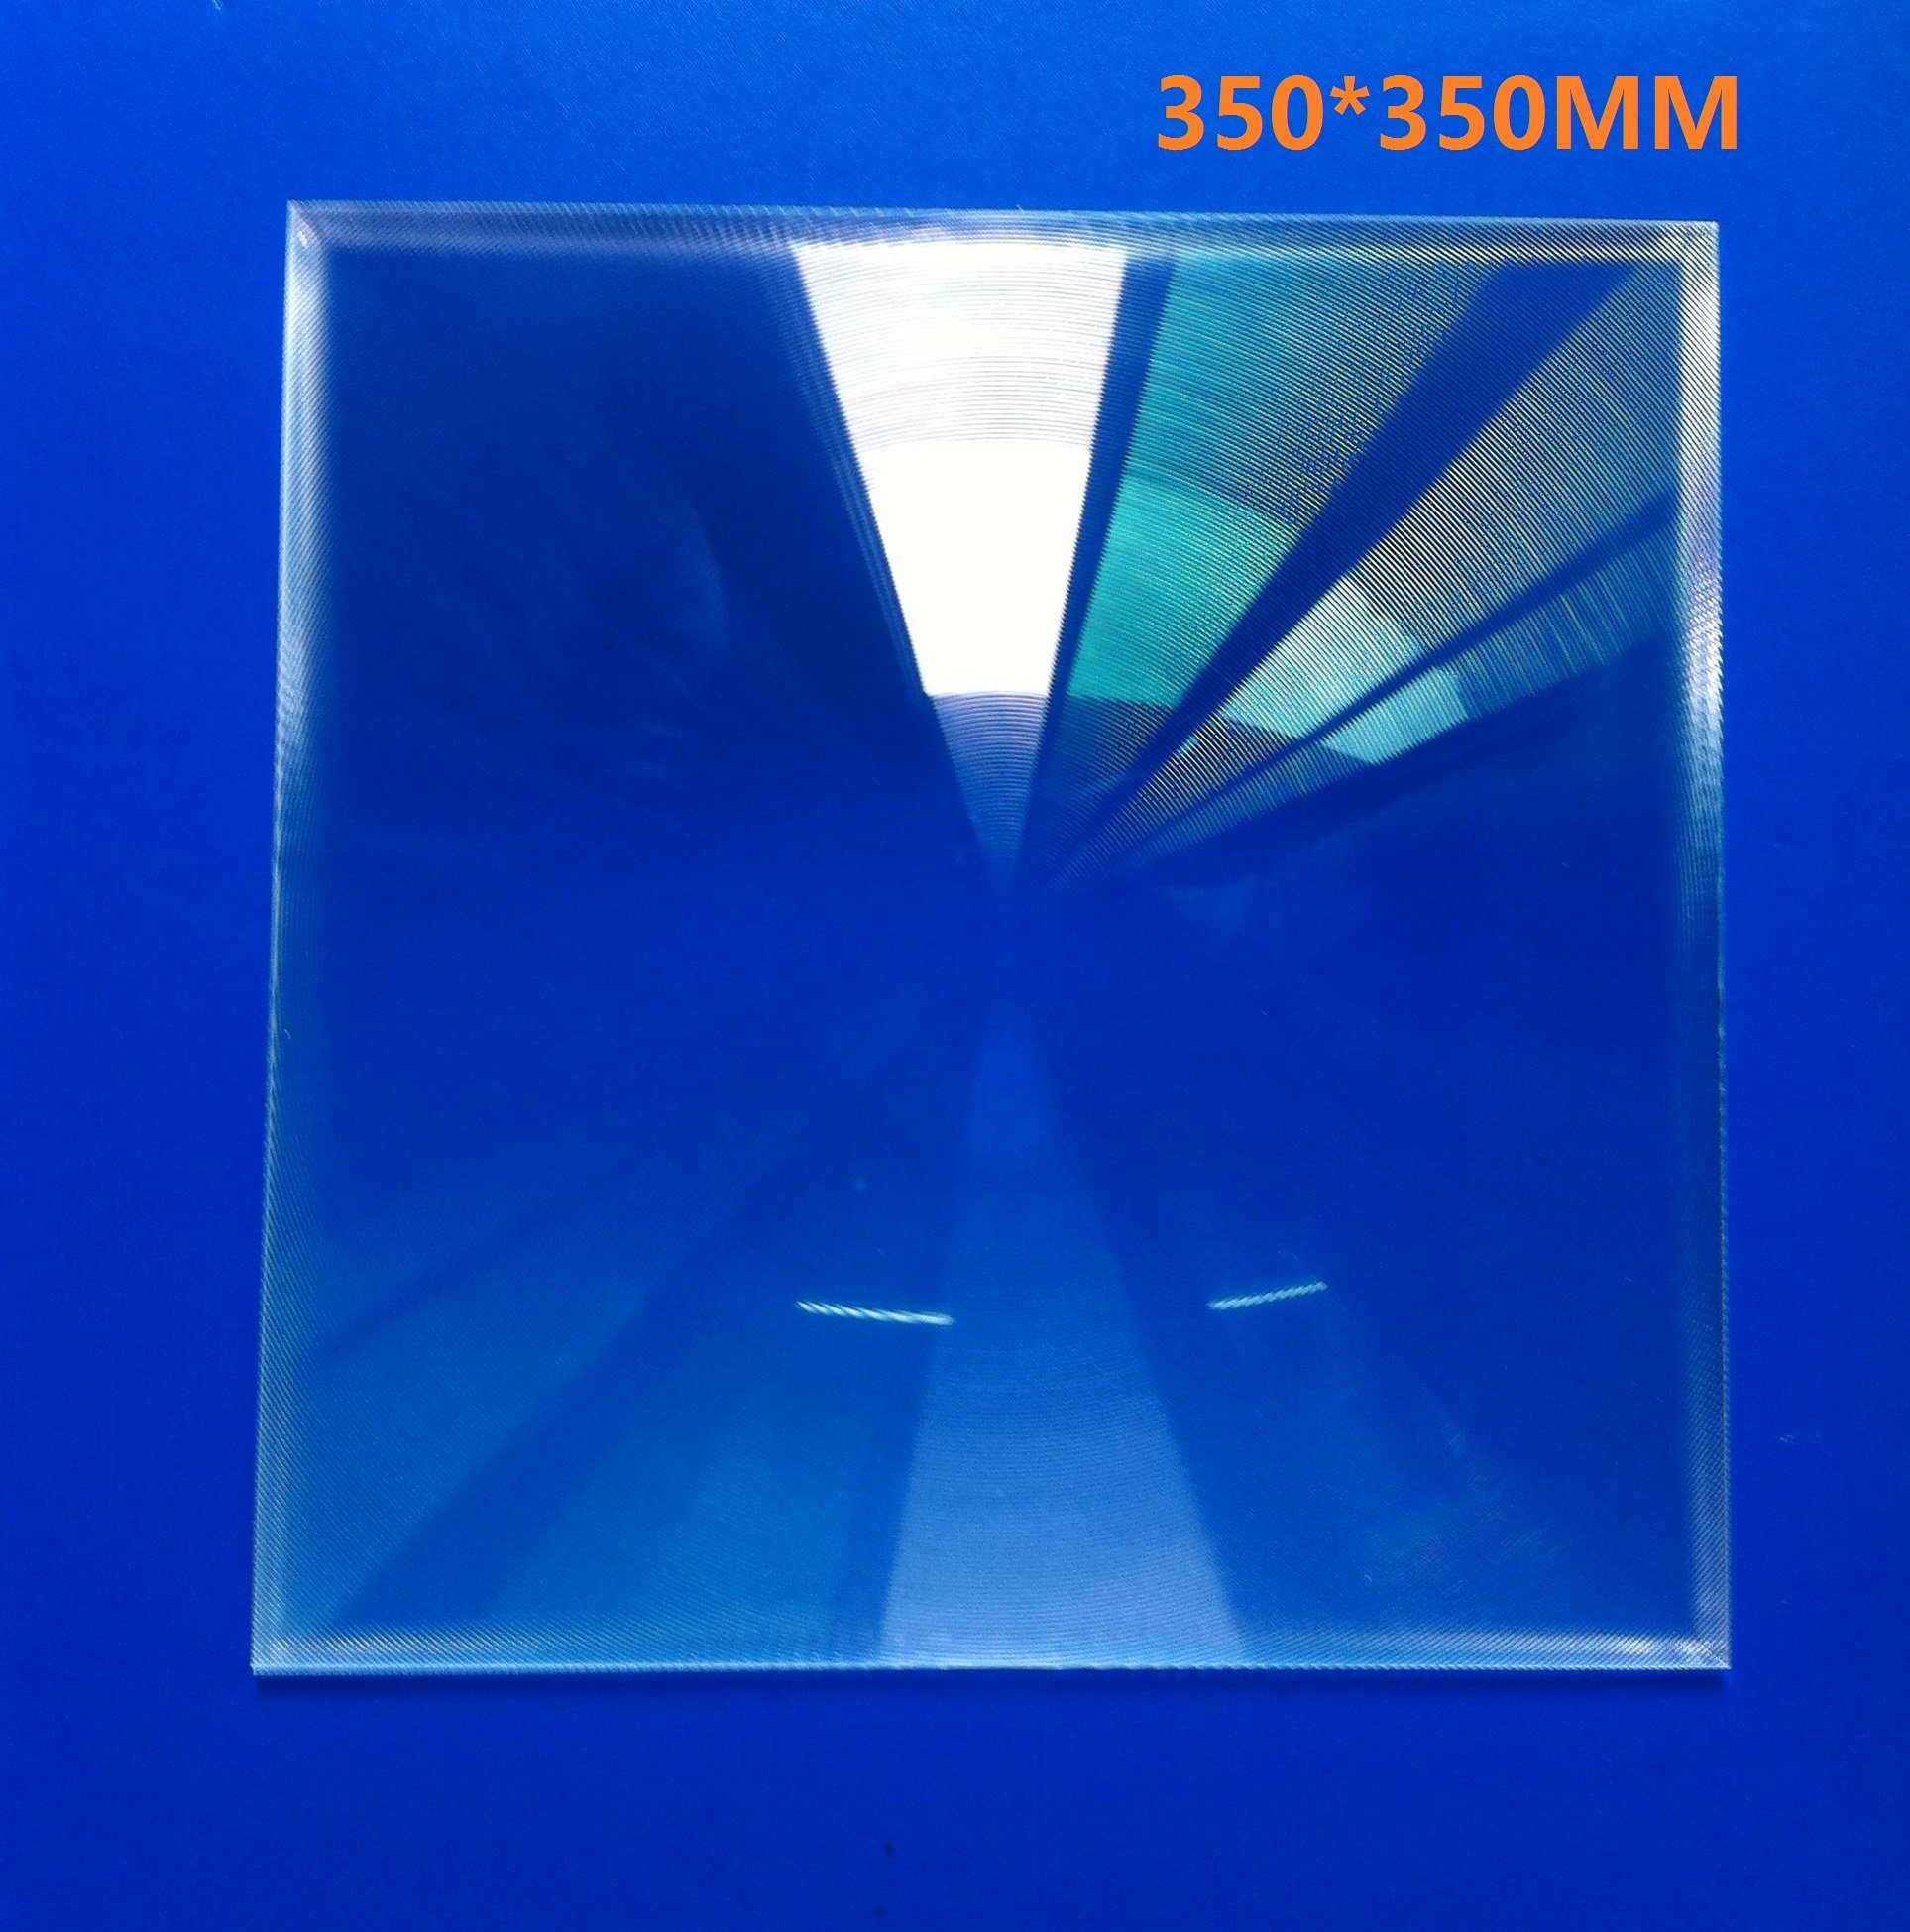 2-Pack Square Fresnel lens 350*350MM Focal Length 370mm for solar collecting, cooking outside,solar energy fresnel lens, DIY Project by Six Seasons (Image #1)